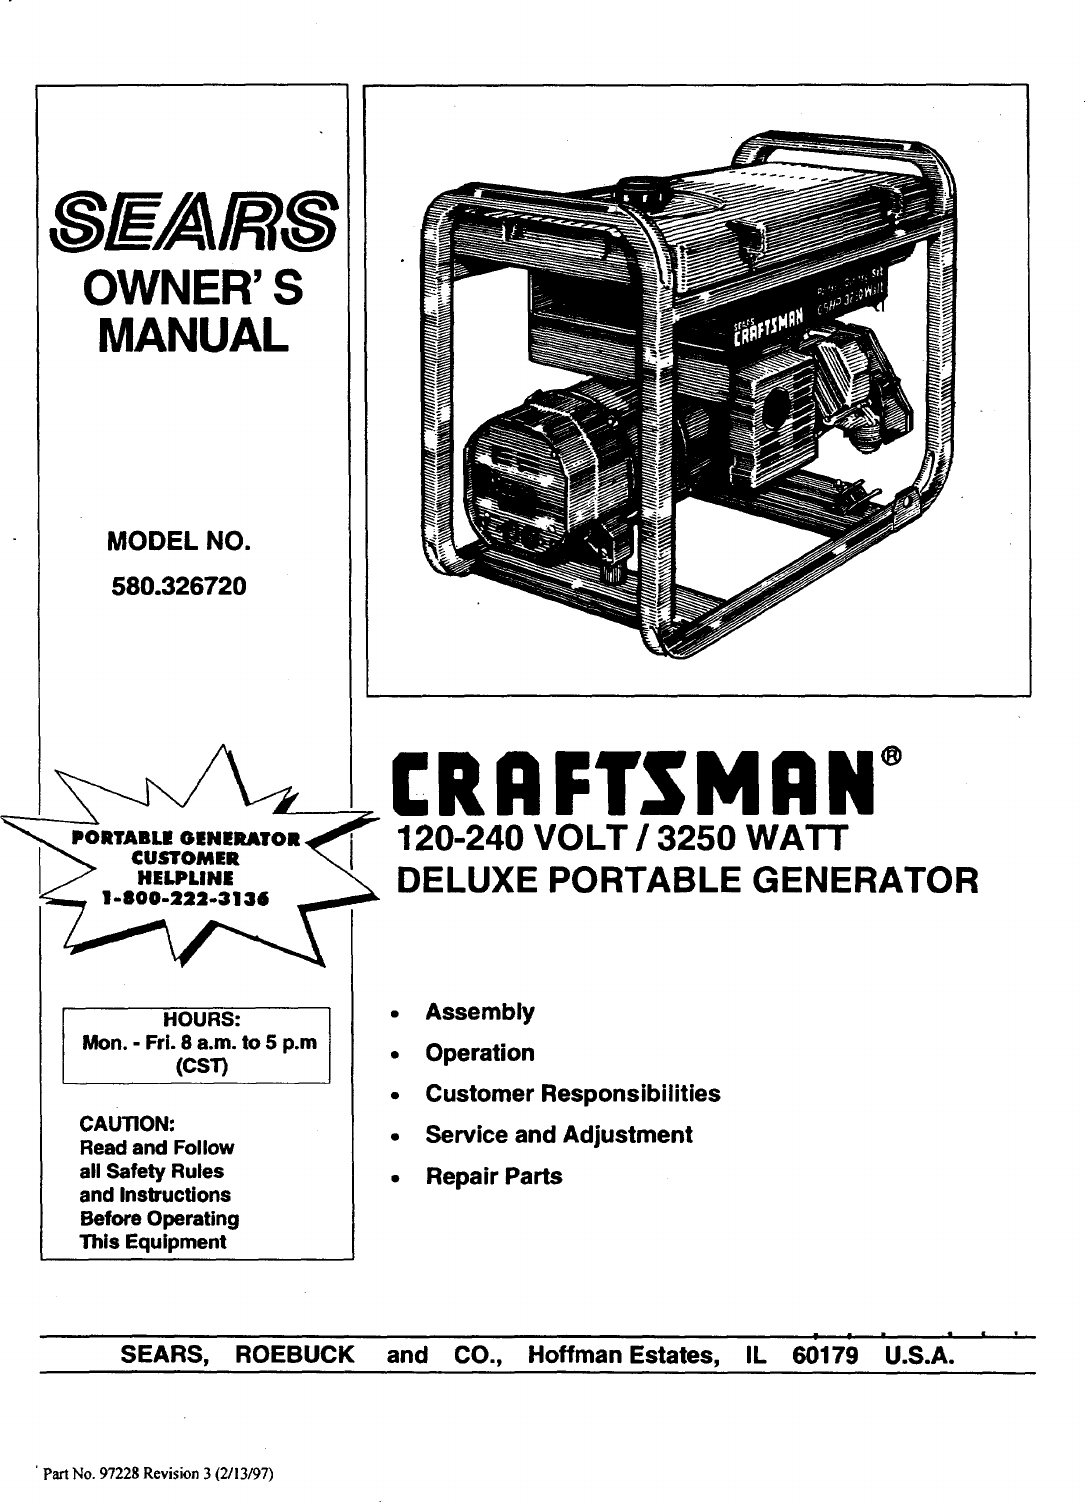 Craftsman 58031810 Generator Parts Manual Guide